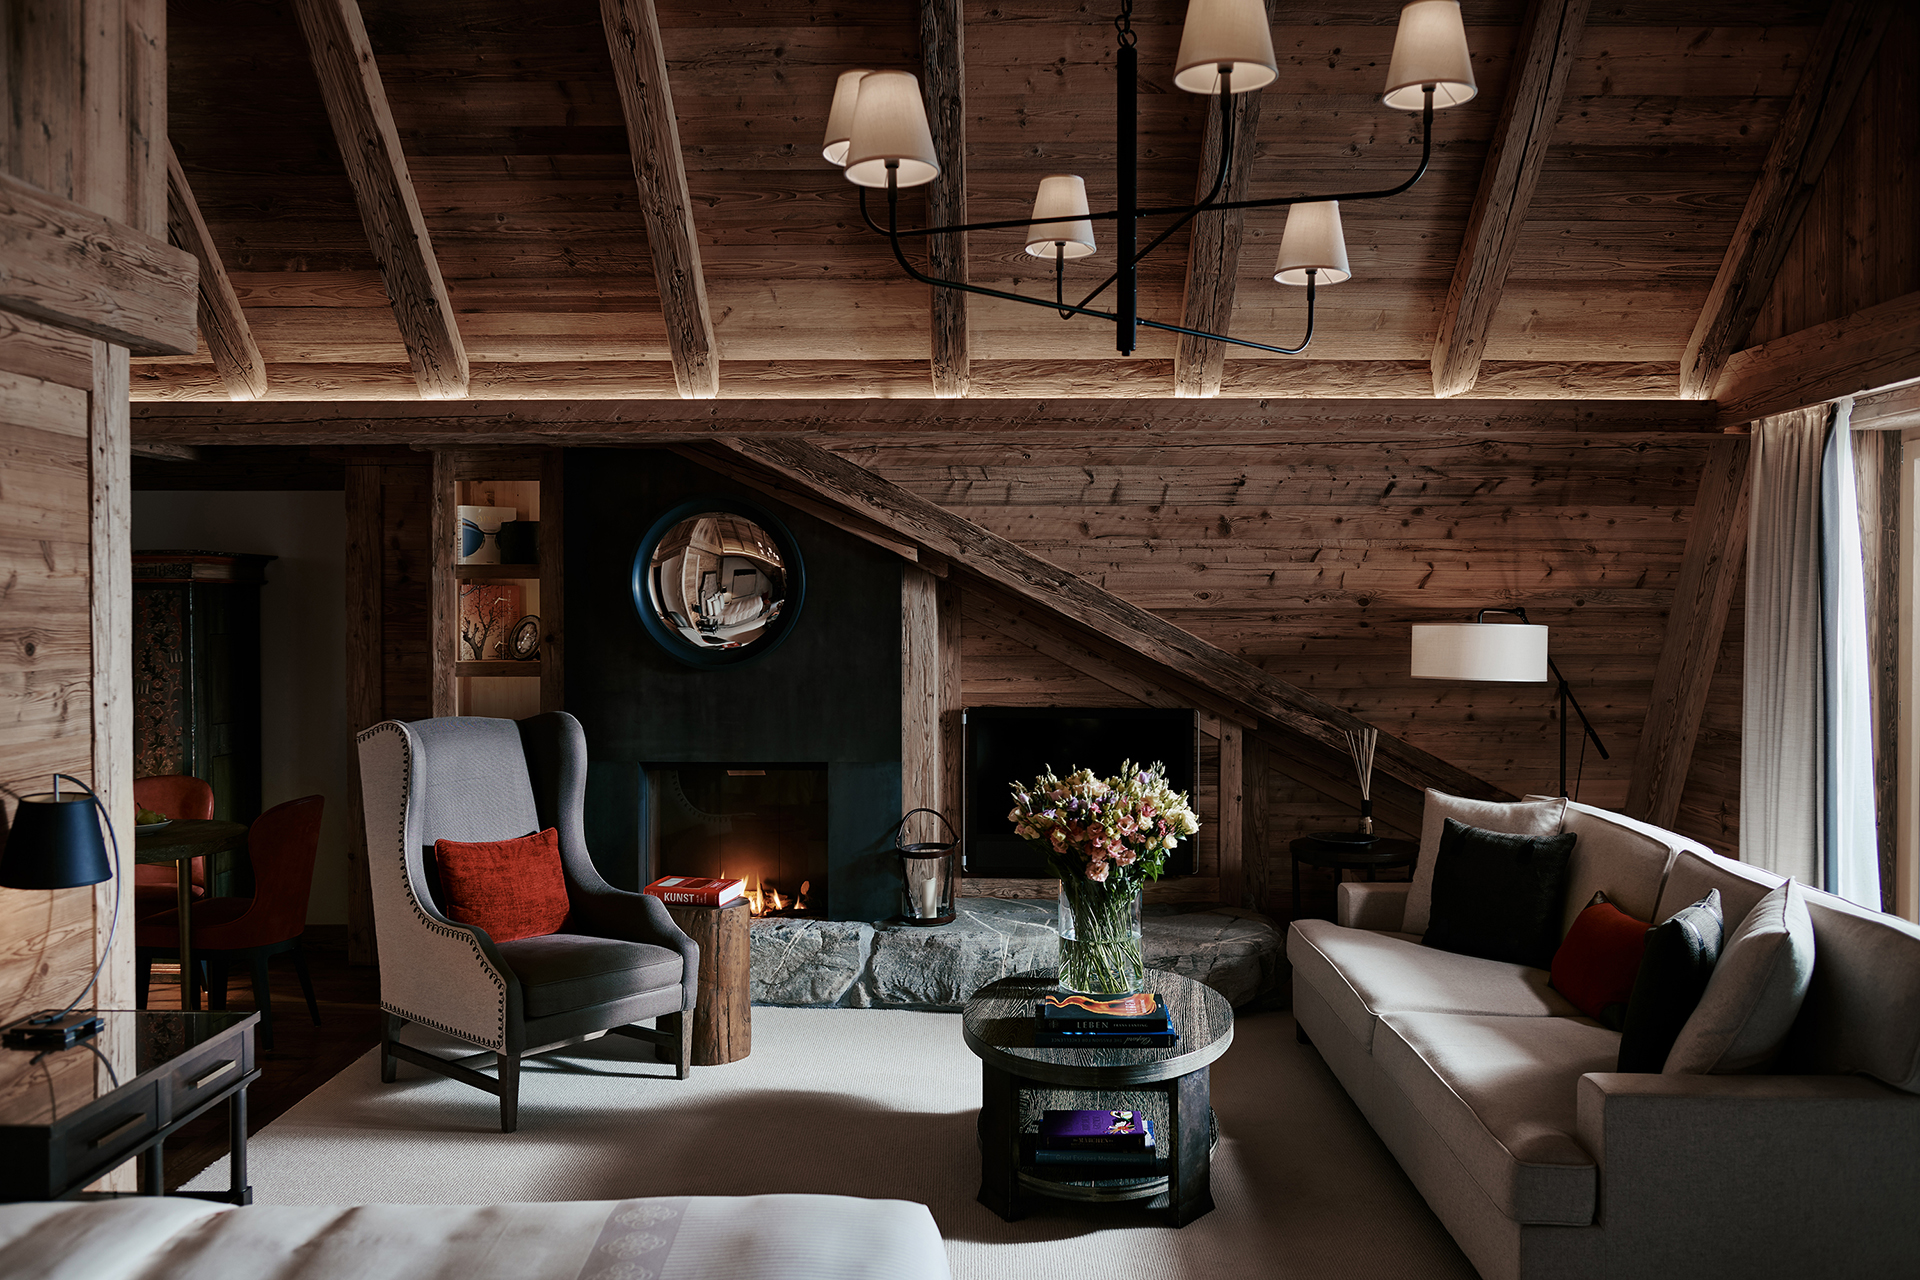 TheAlpinaGstaad_Rooms&Suites_0047_1920.jpg